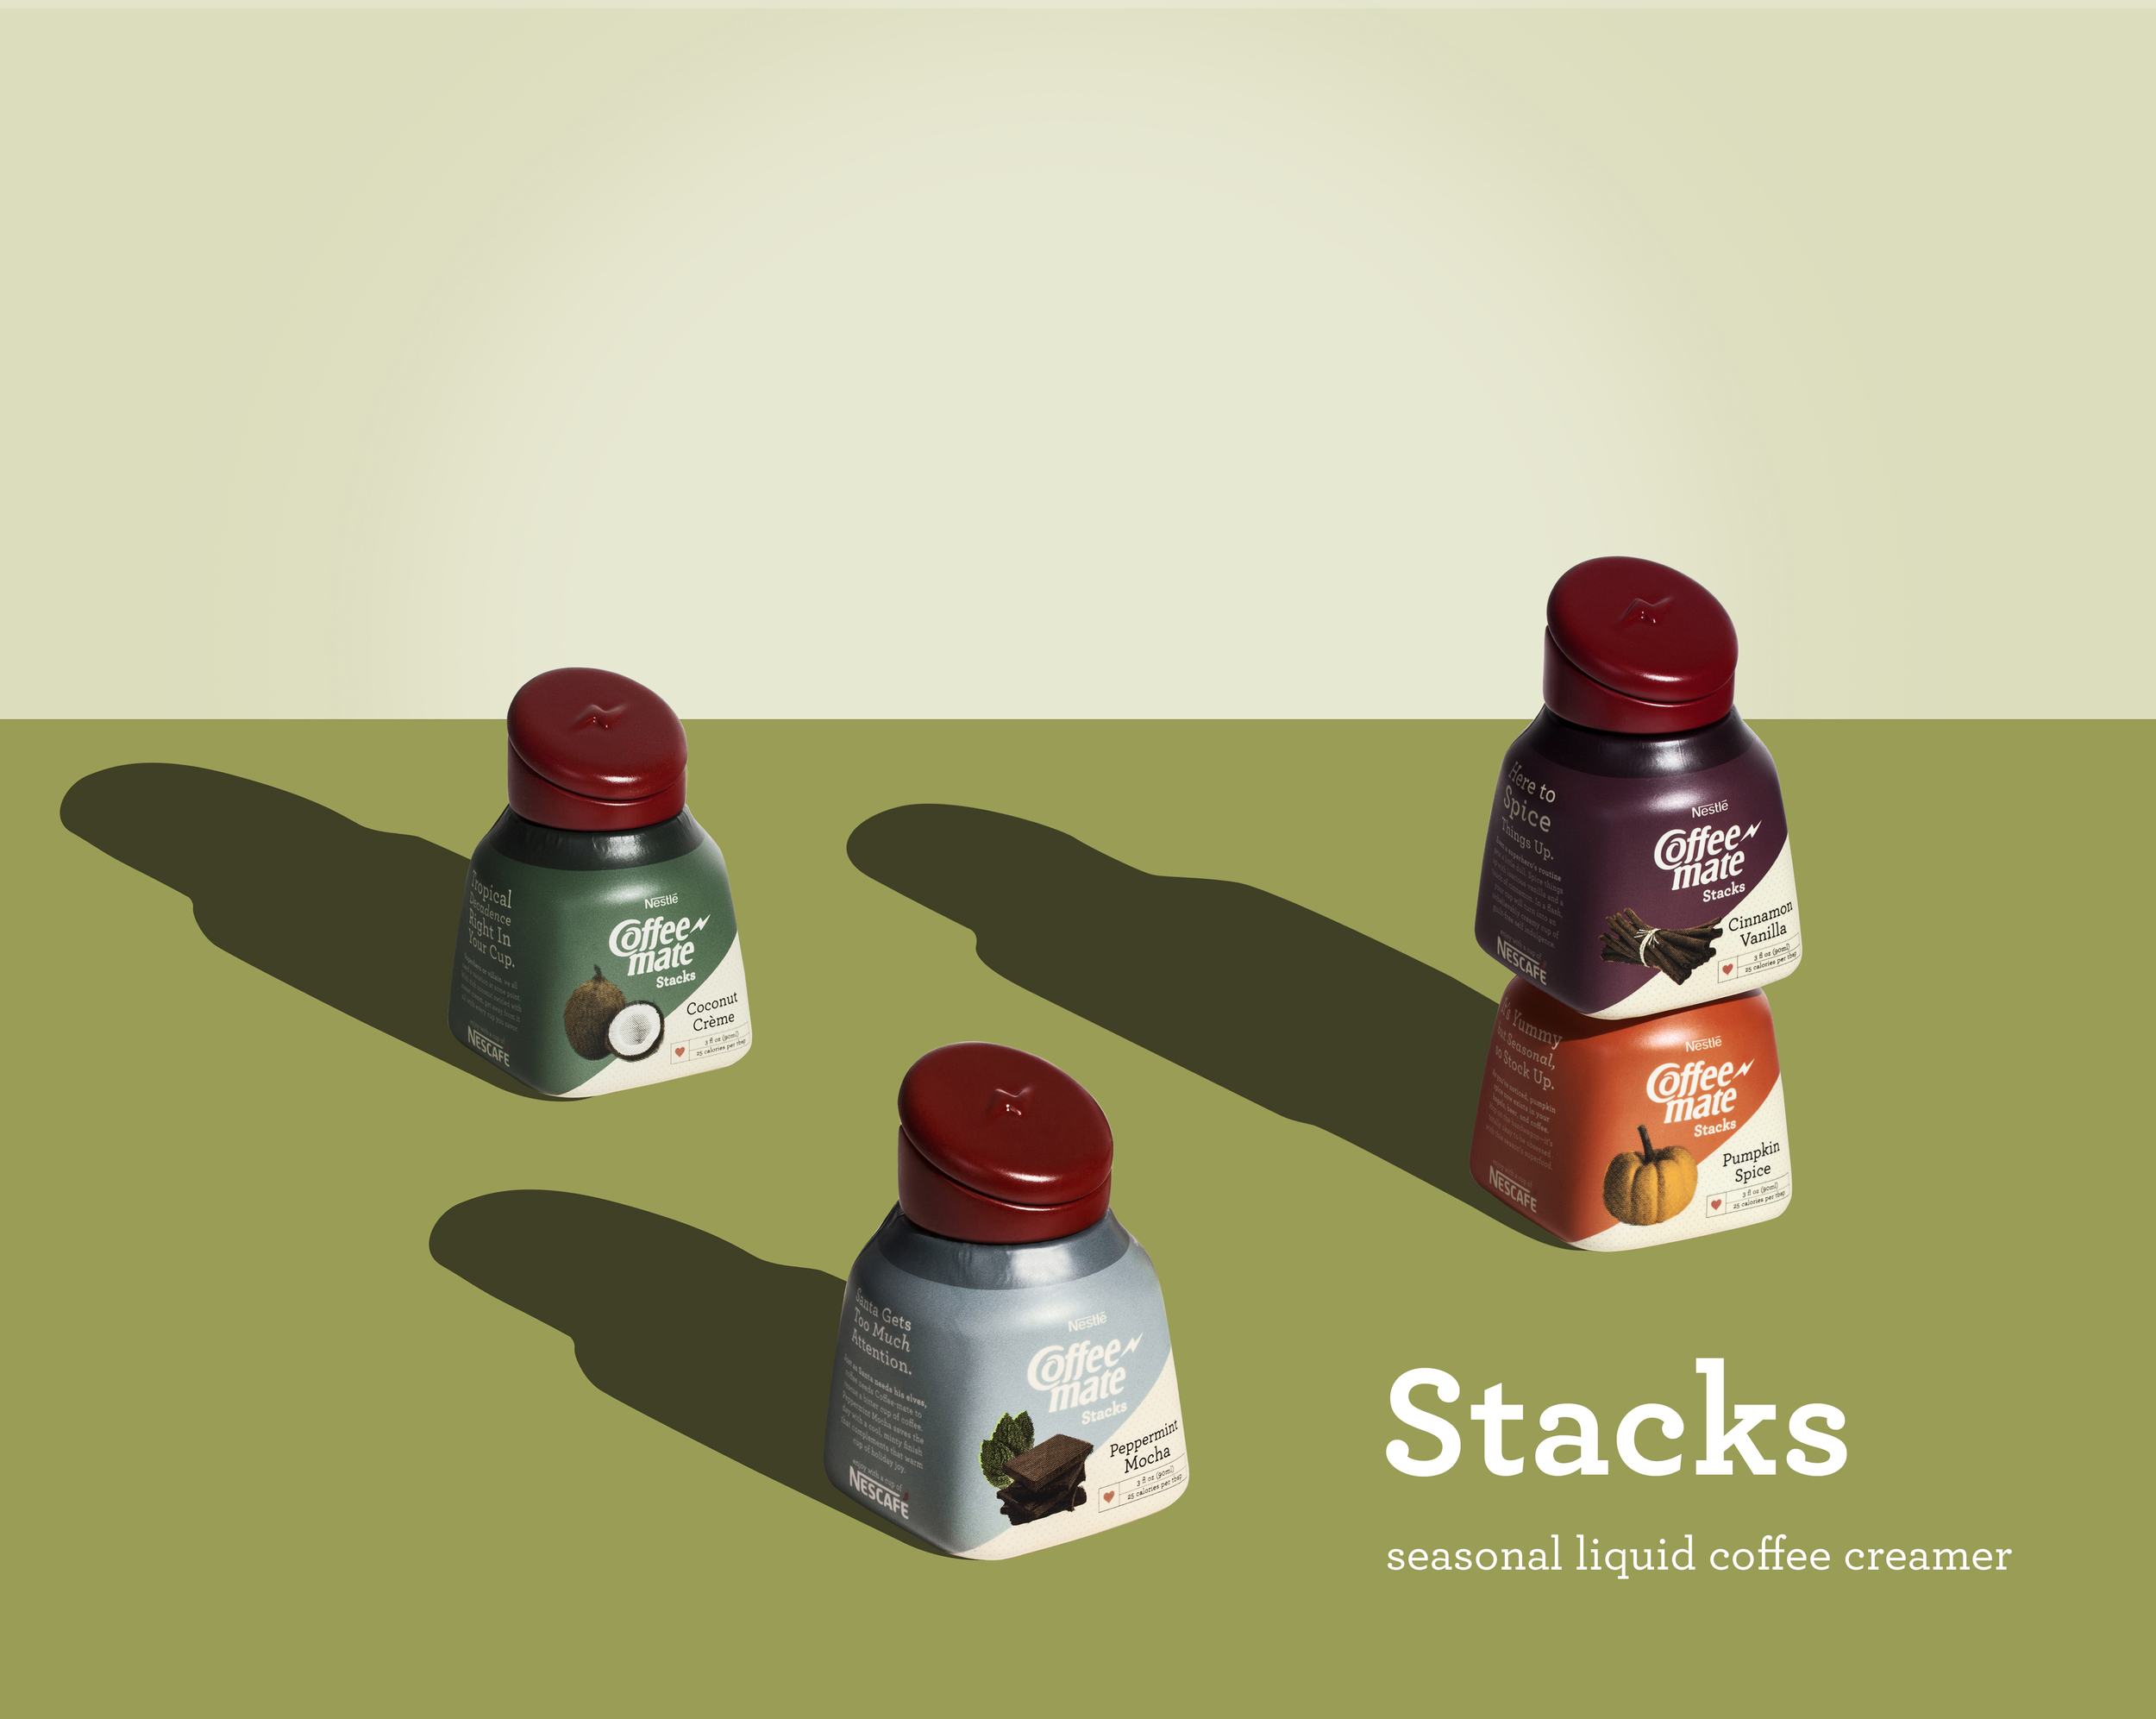 stacks-newest4.jpg